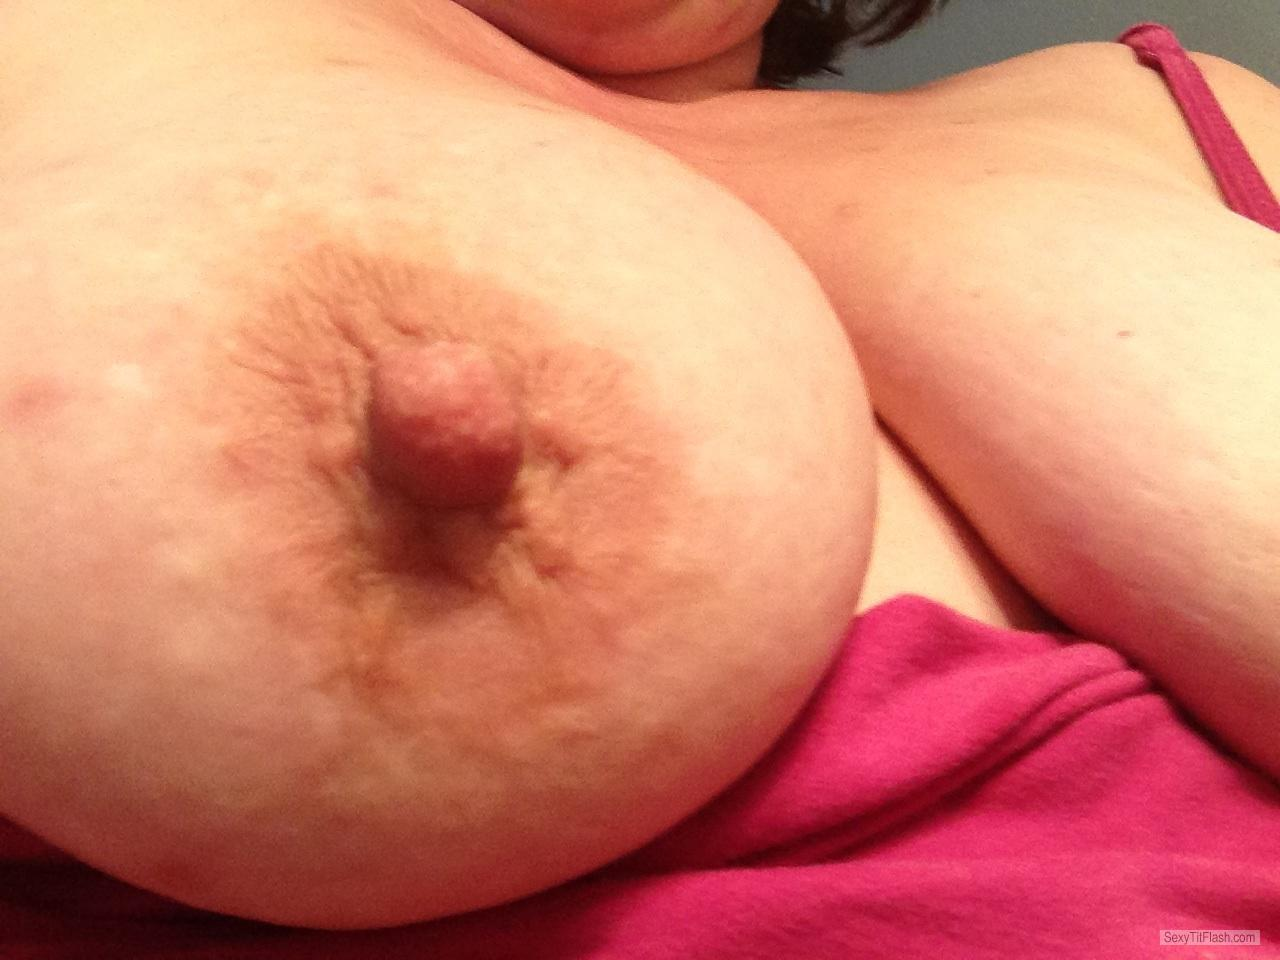 Tit Flash: Wife's Medium Tits (Selfie) - Mel from United States